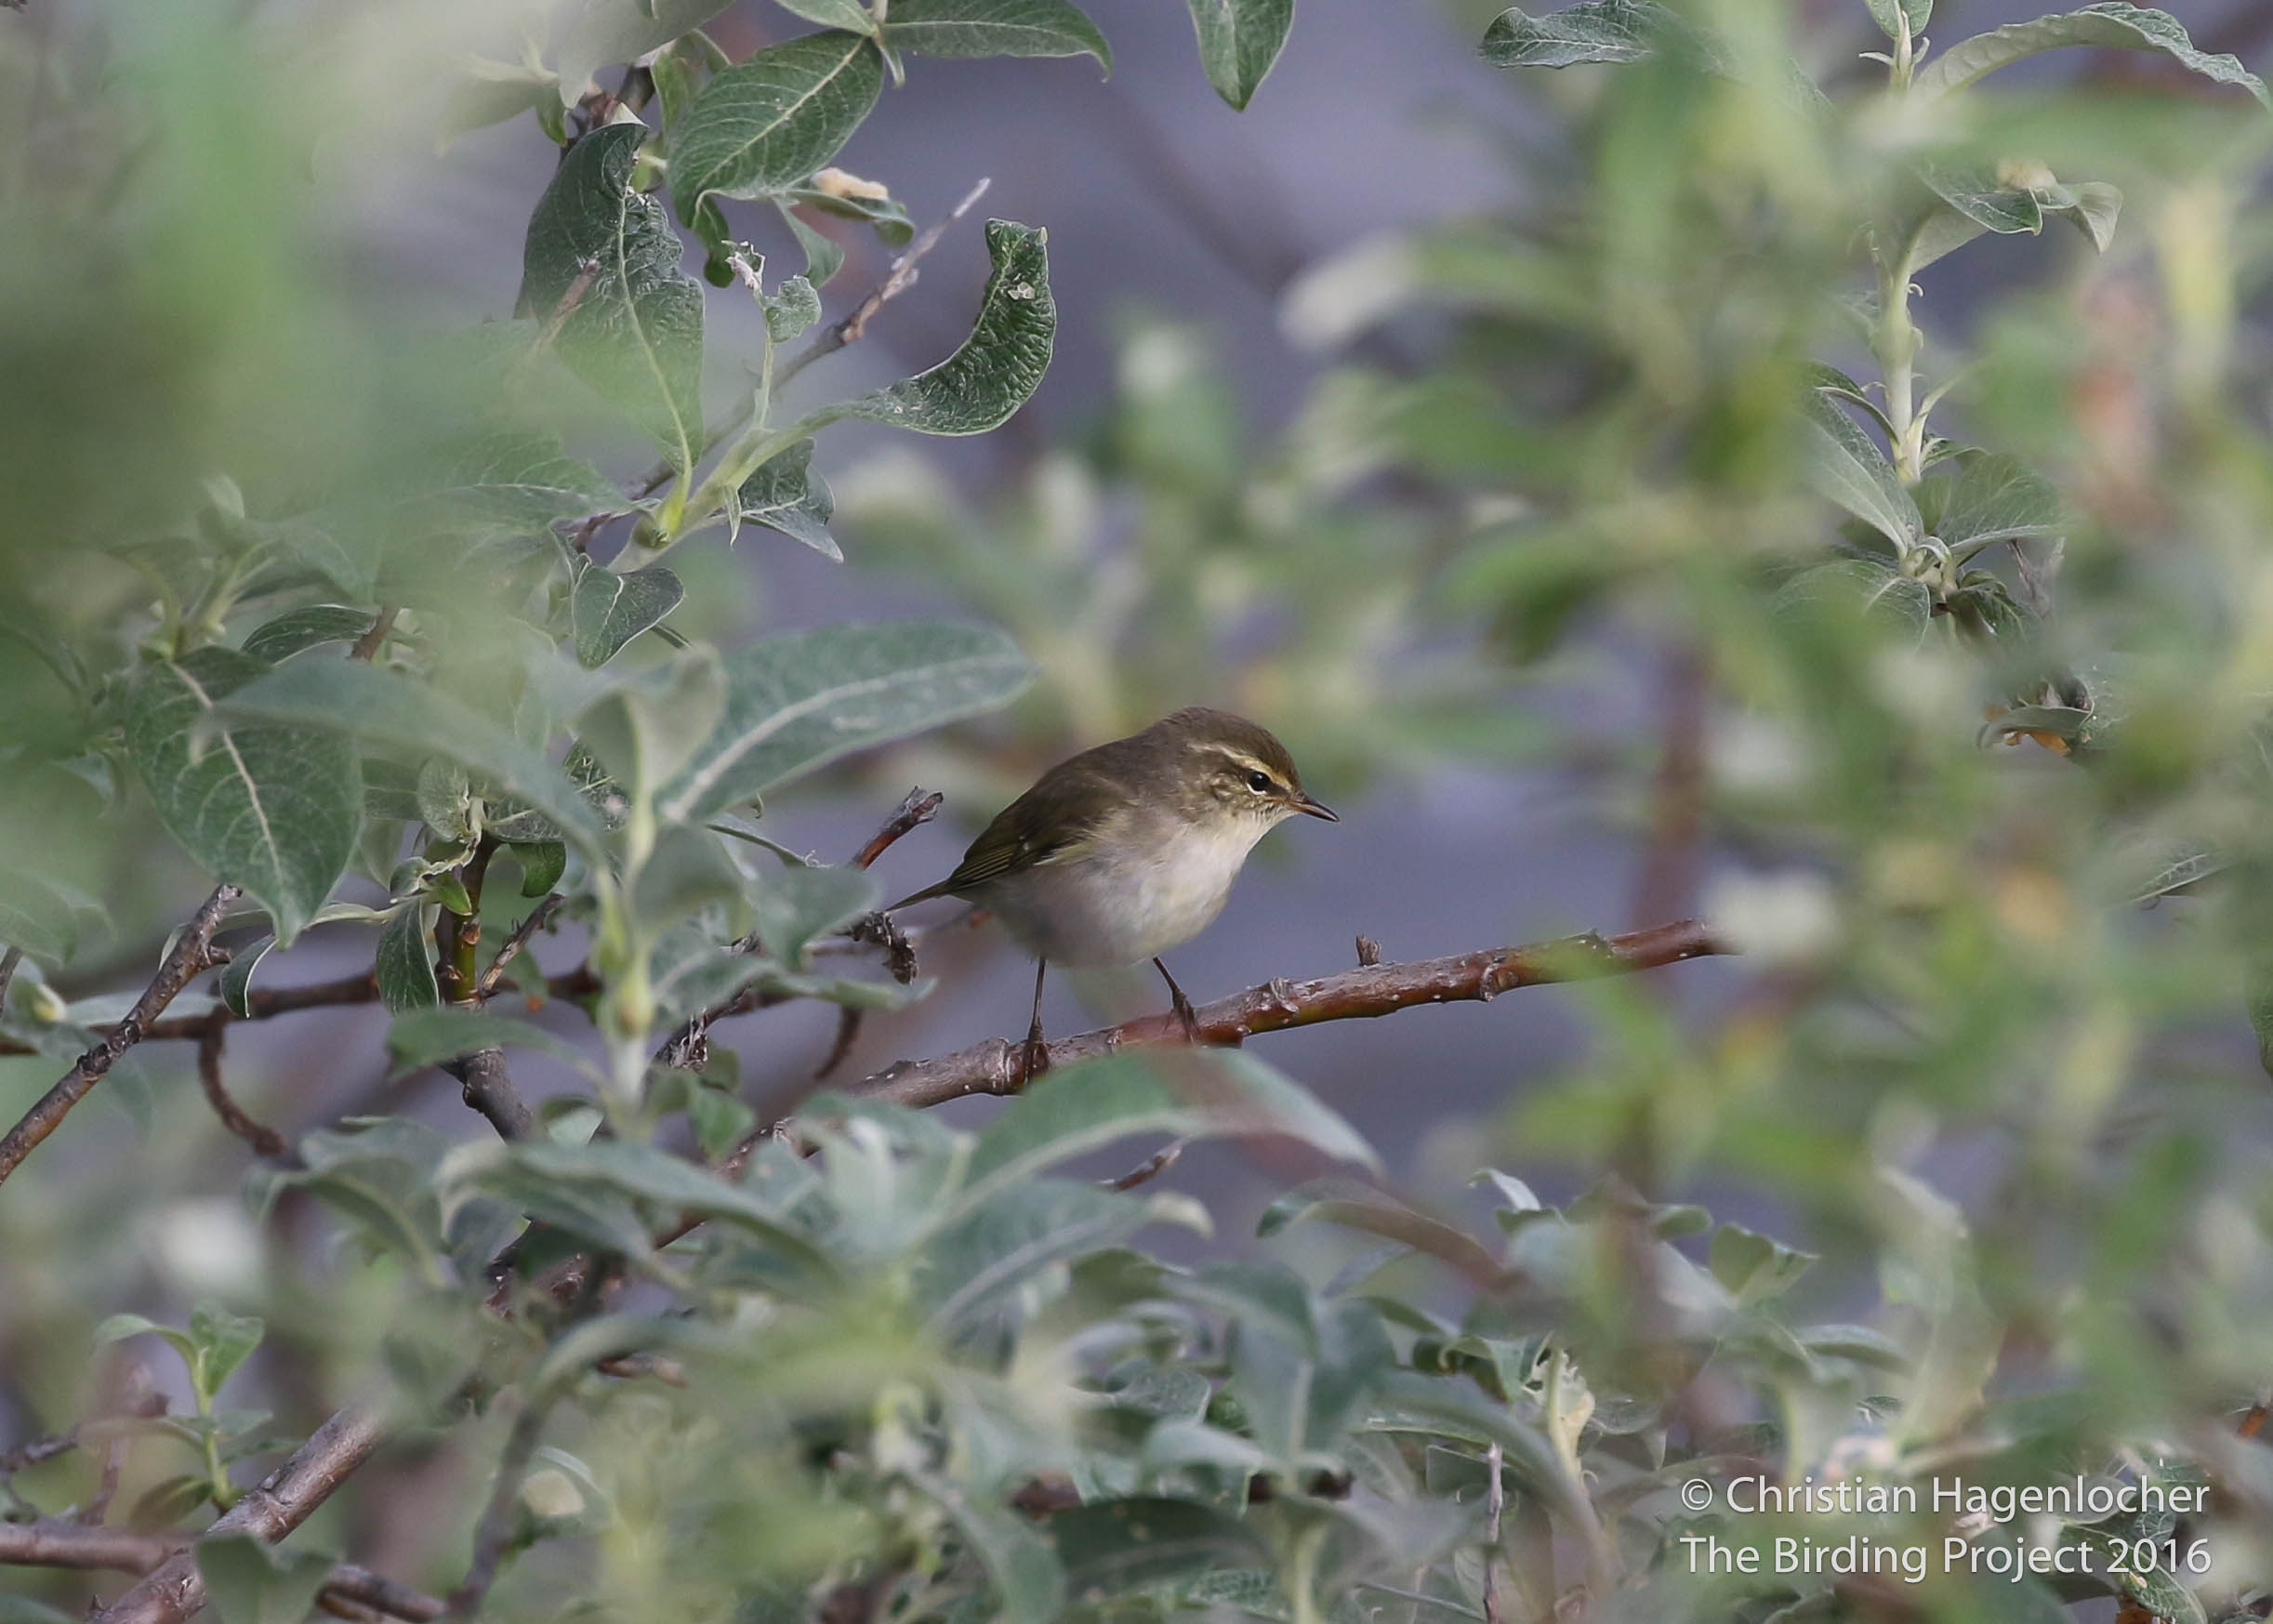 A common breeder around the river valleys of Nome, this Arctic Warbler was singing at our first stop of the morning along the Kougarok Road. It is the only member of the Old World warblers that breeds in North America, making an interesting addition to my year list.